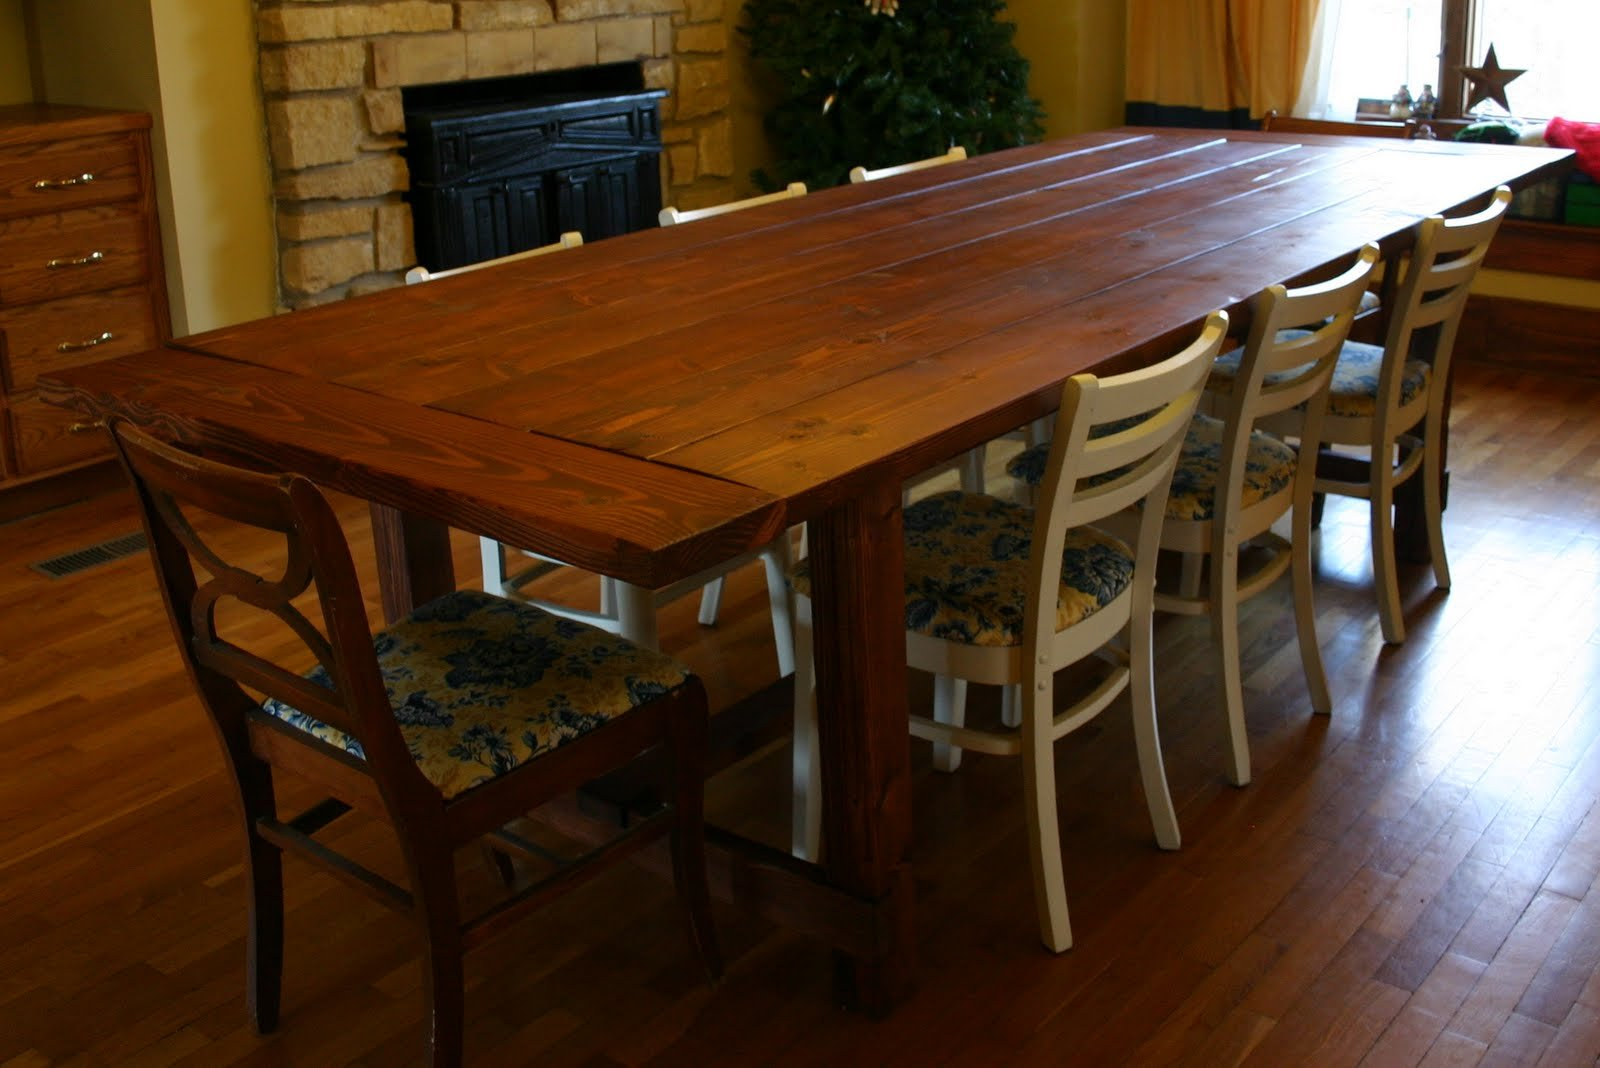 Dining Room Table Plans With Leaves dining room table plans with leaves - large and beautiful photos